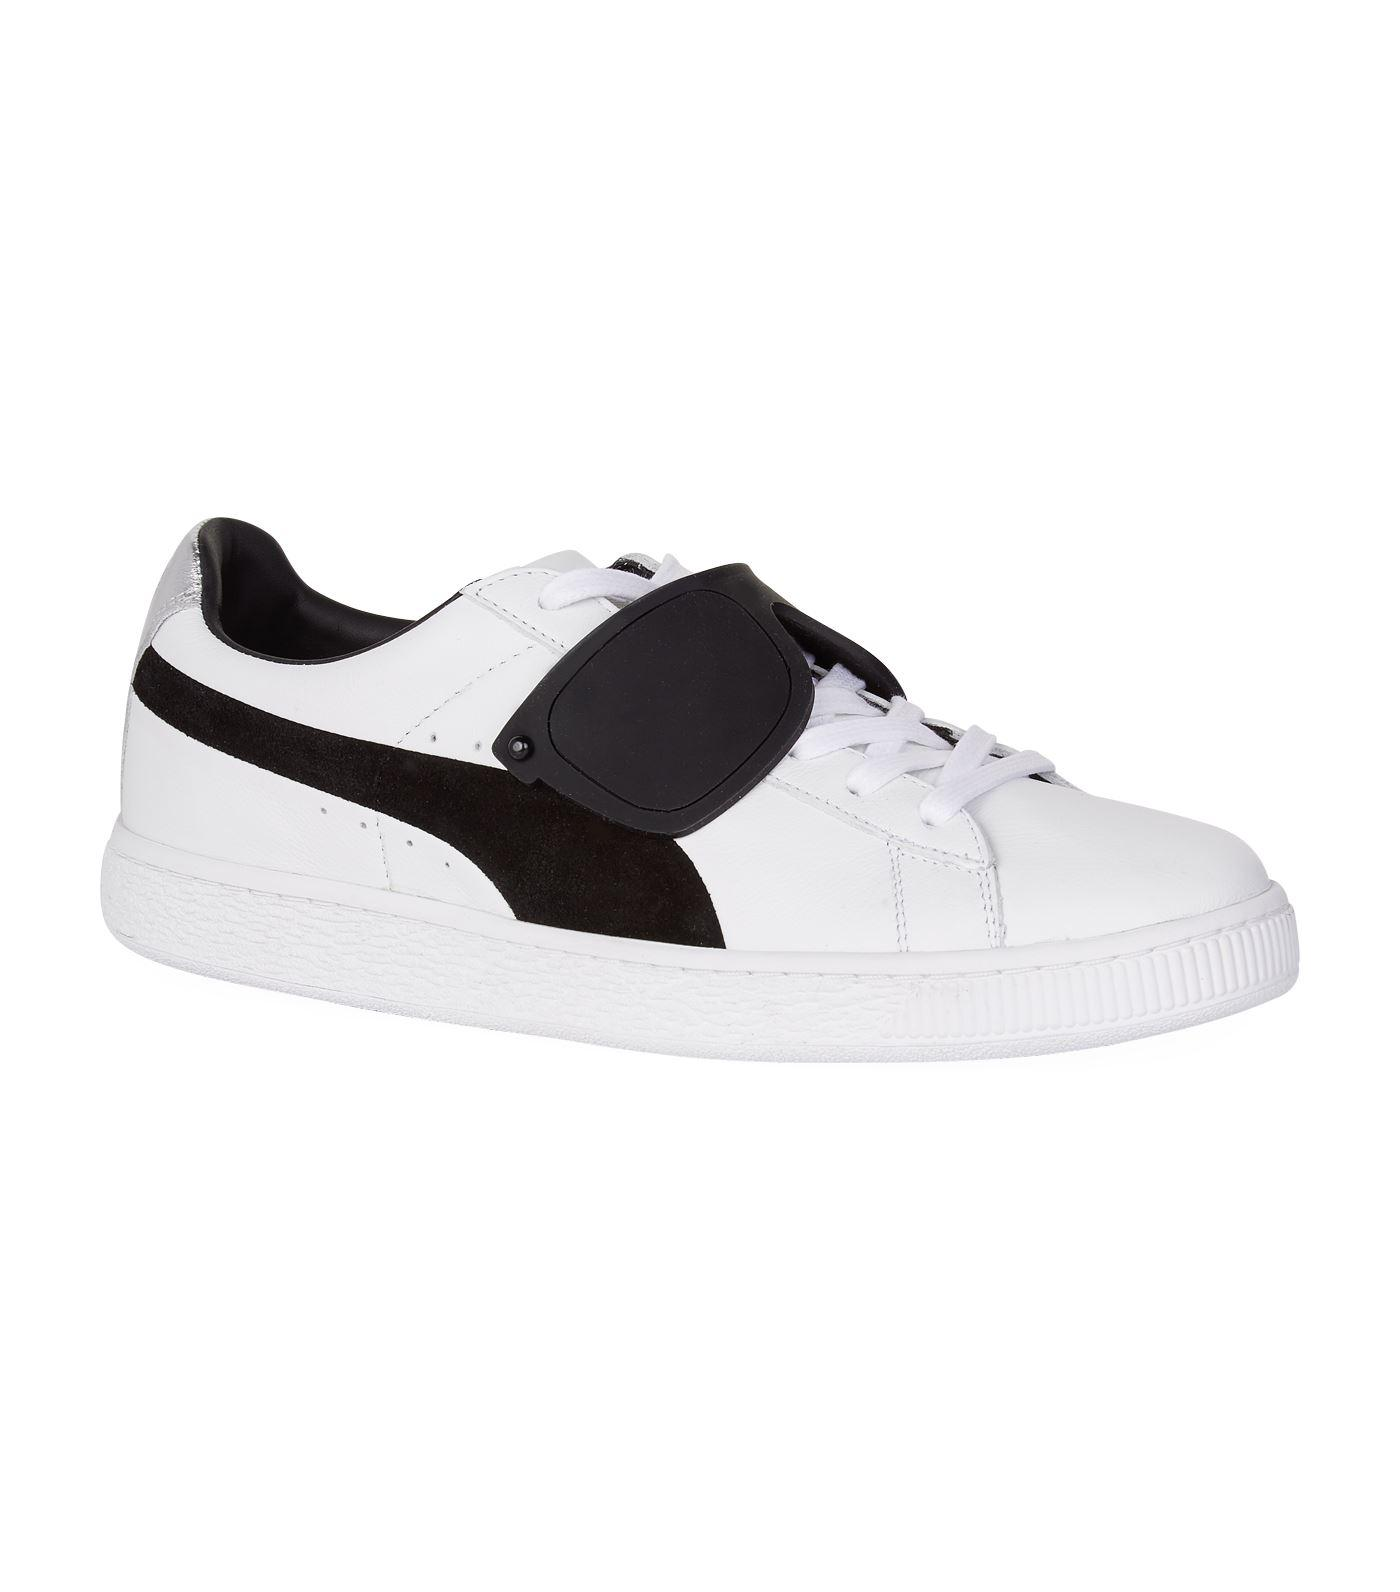 1204d78ad449 PUMA X Karl Lagerfeld Suede Sneakers in White - Lyst